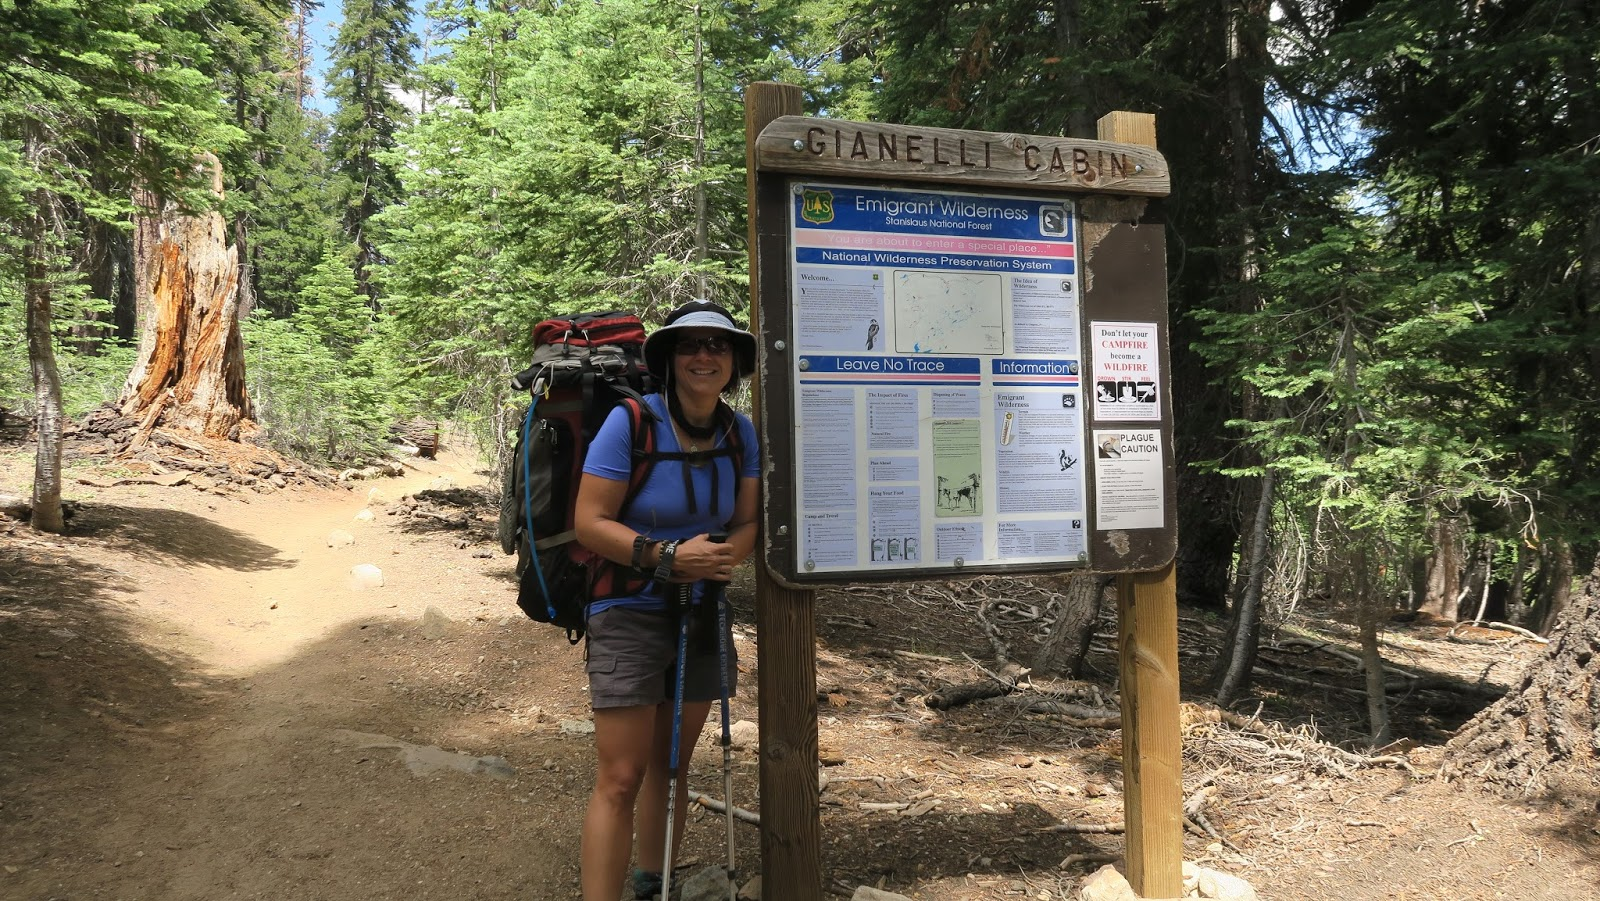 Diary of an Aspiring Loser: Backpacking: Gianelli Cabin to